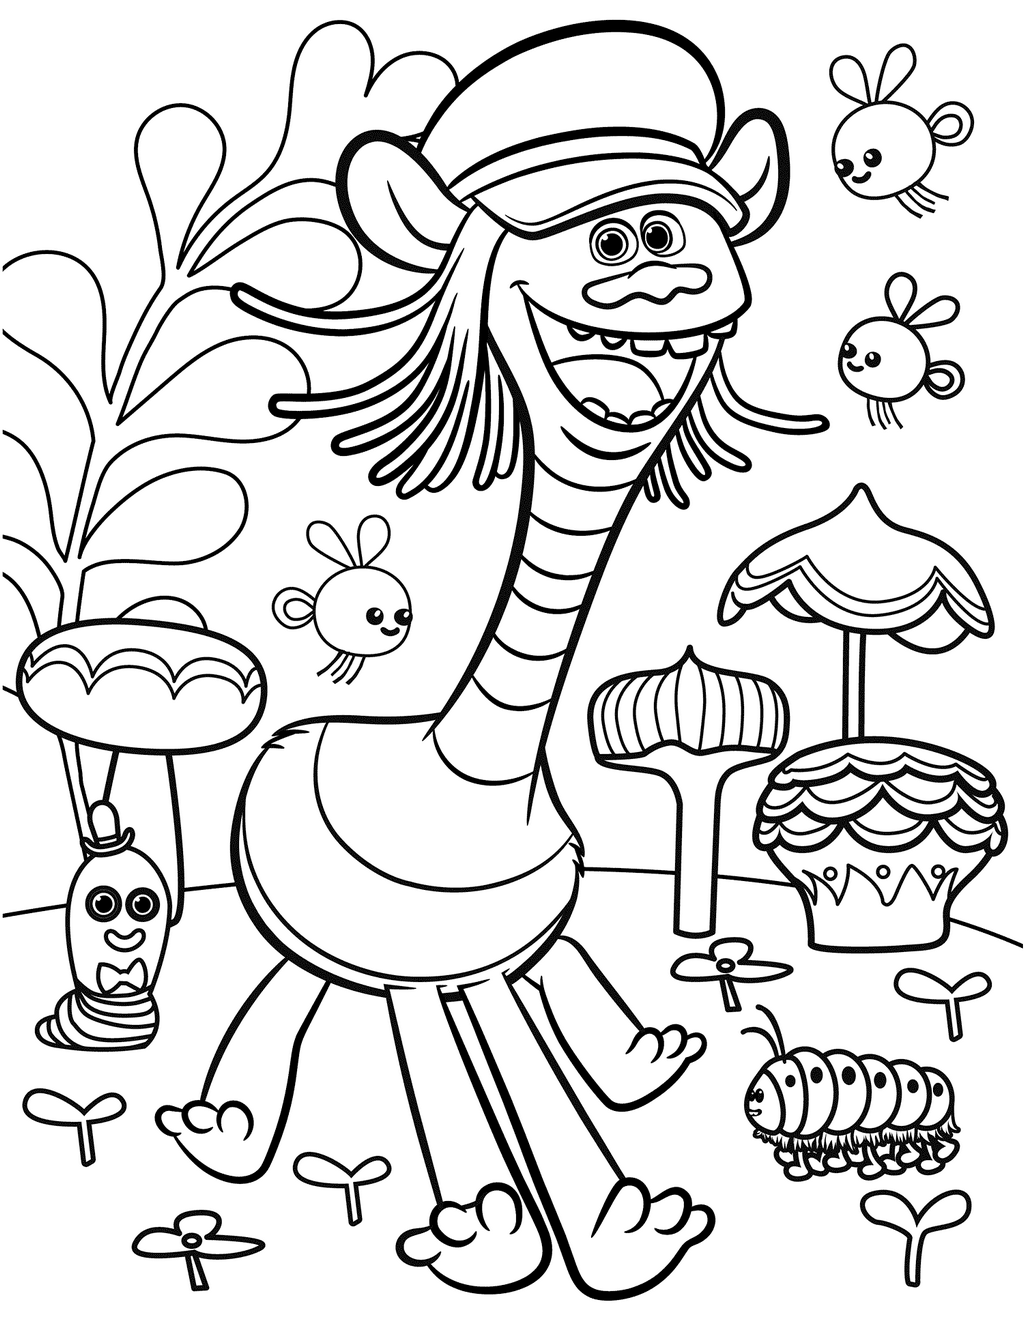 cooper from trolls coloring sheet for kids